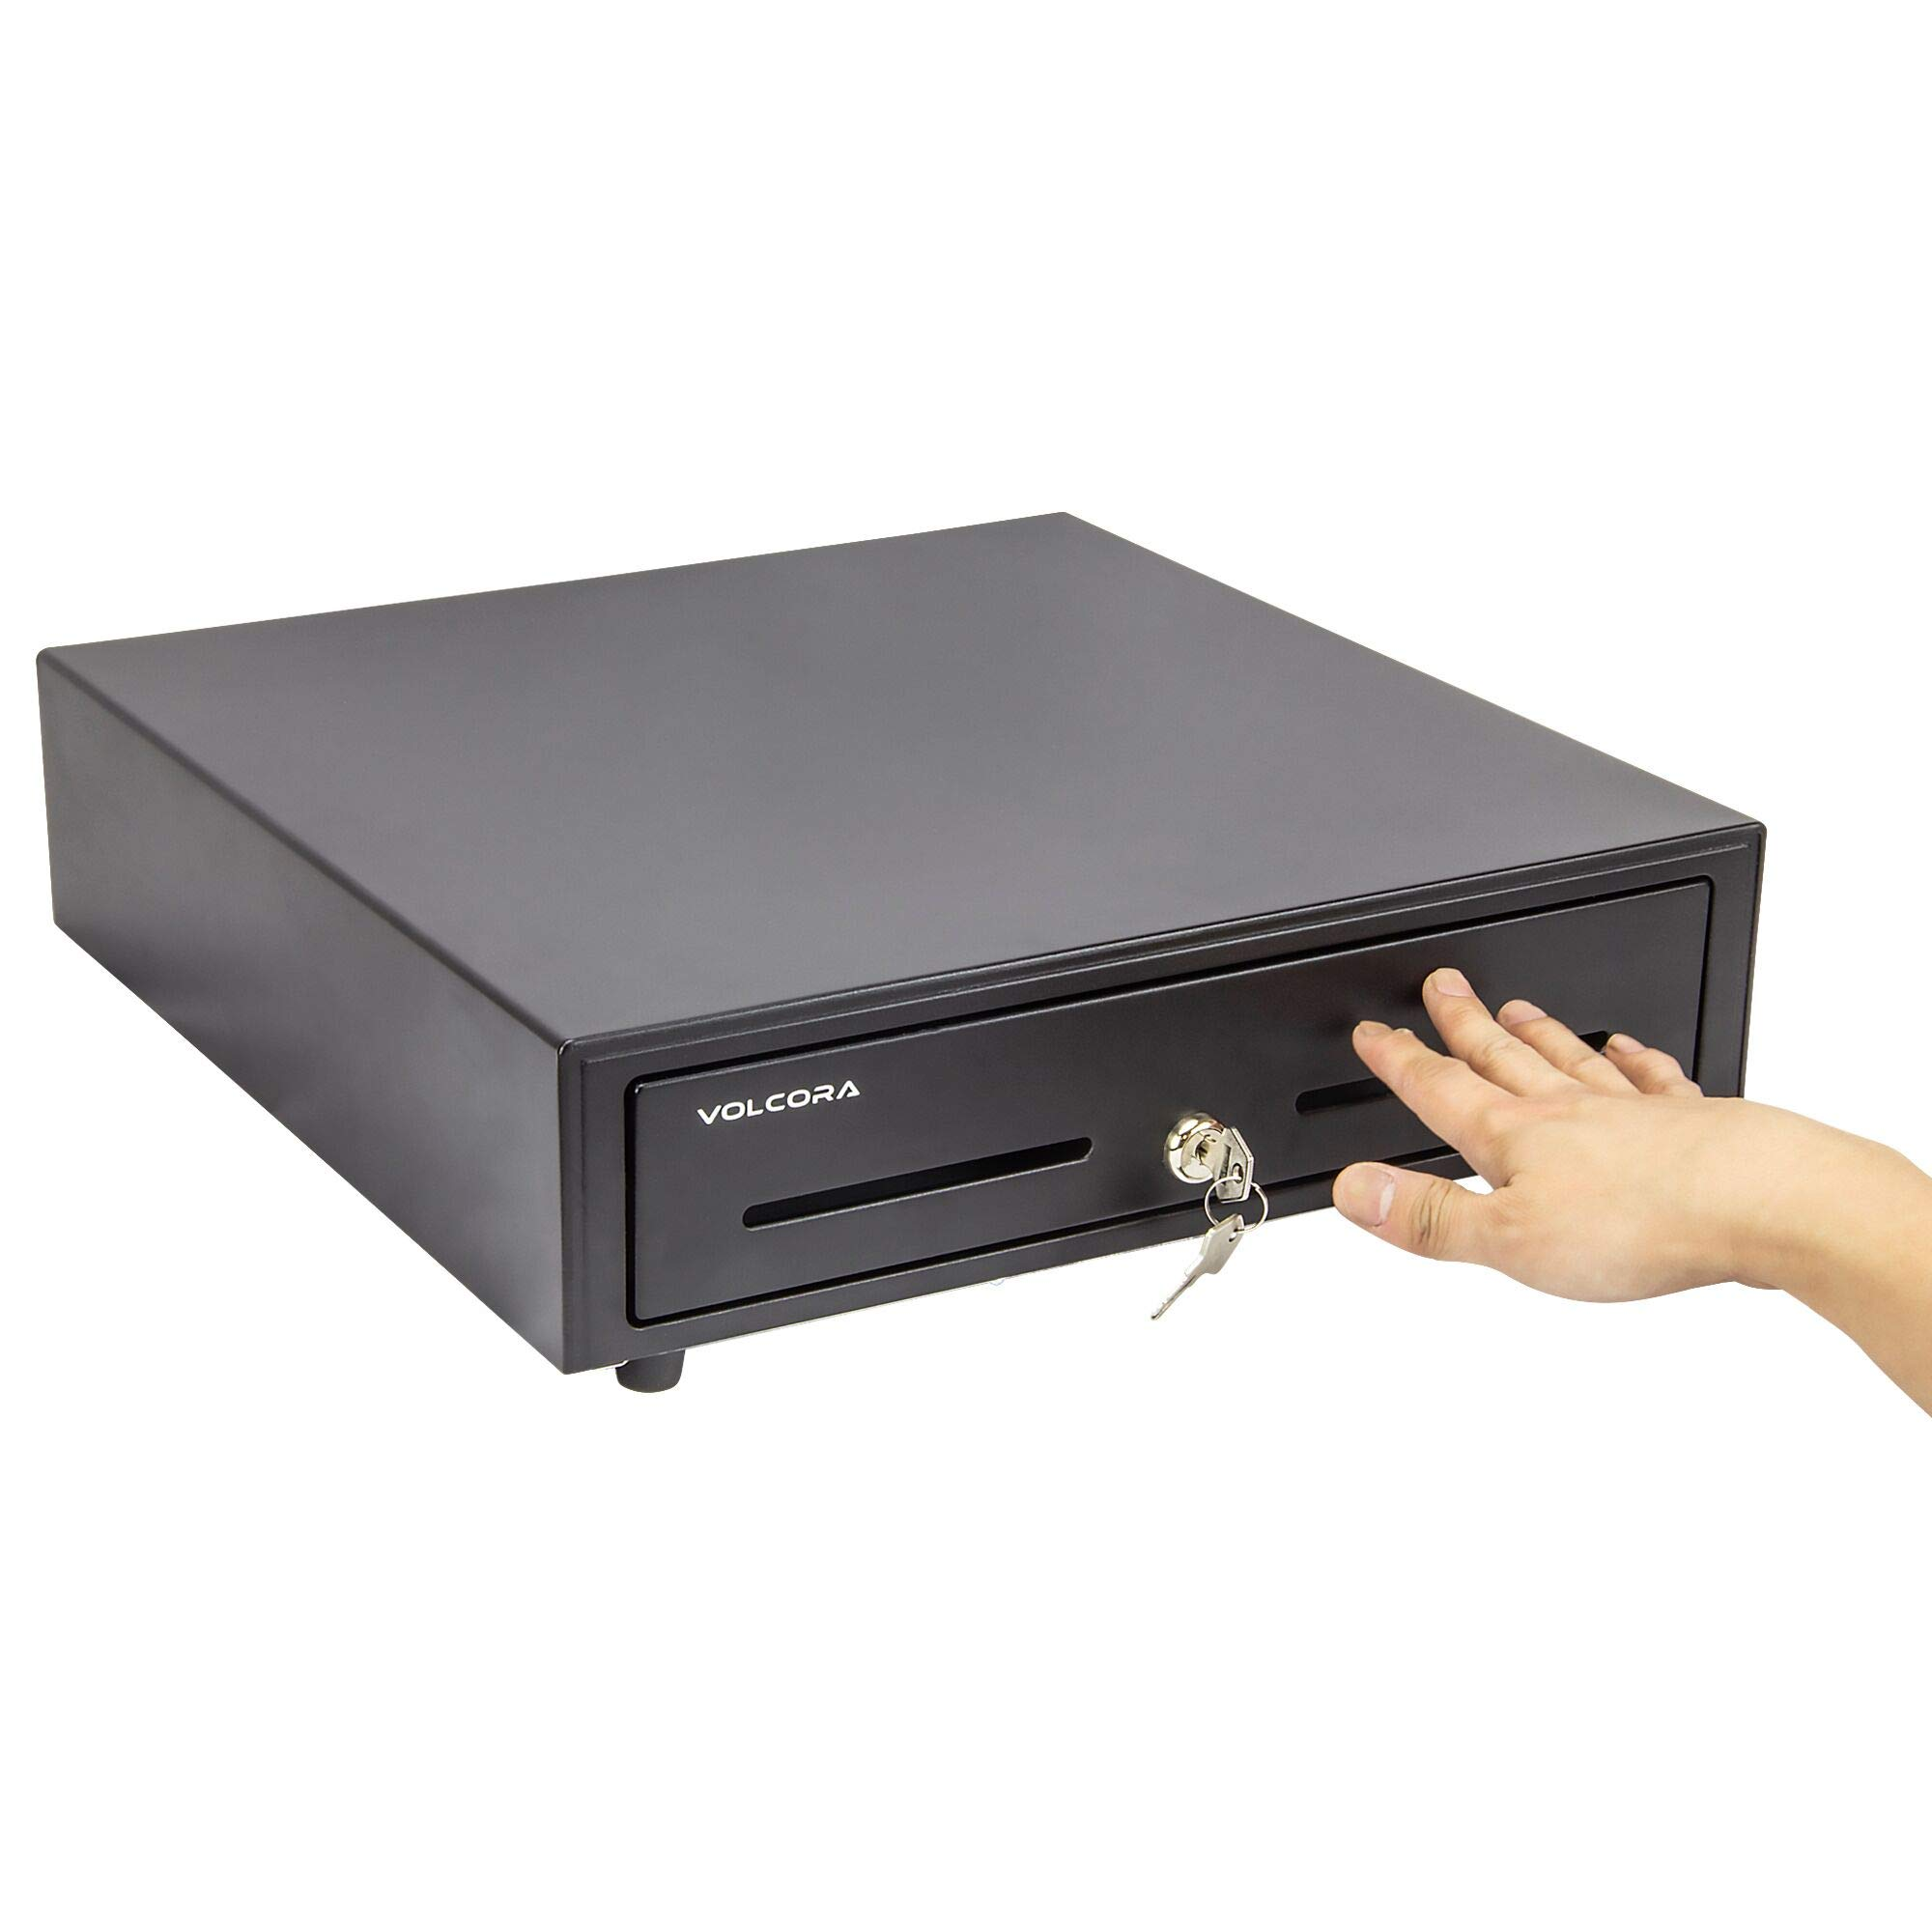 16'' Manual Push Open Cash Register Drawer for Point of Sale (POS) System, Black Heavy Duty Till with 5 Bills/8 Coin Slots, Key Lock with Fully Removable Money Tray and Double Media Slots by Volcora